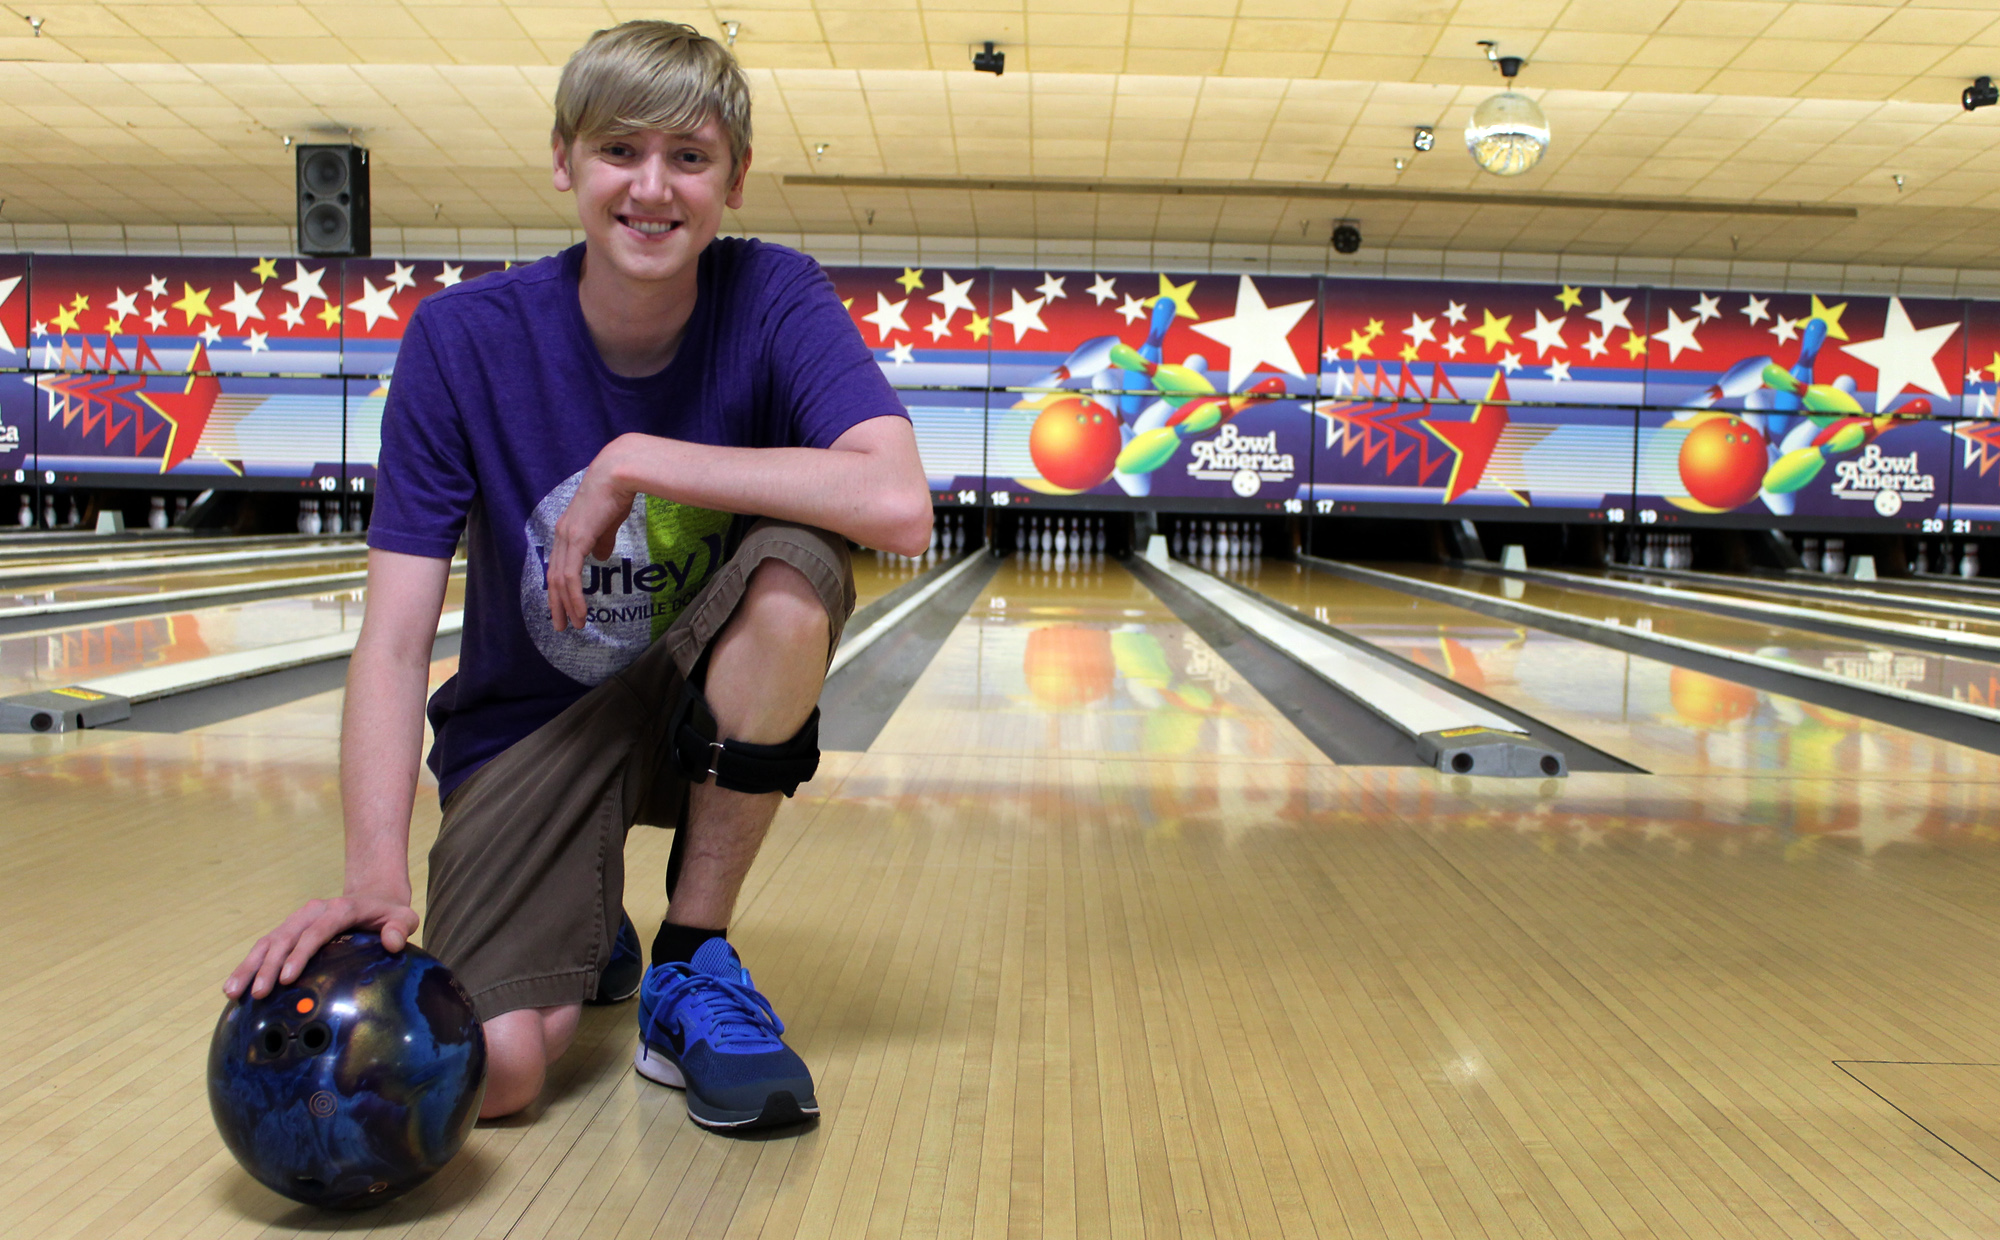 Curtis Higgons, 22 year-old double lung transplant recipient at Mayo Clinic in Florida poses at the bowling alley with his bowling ball.